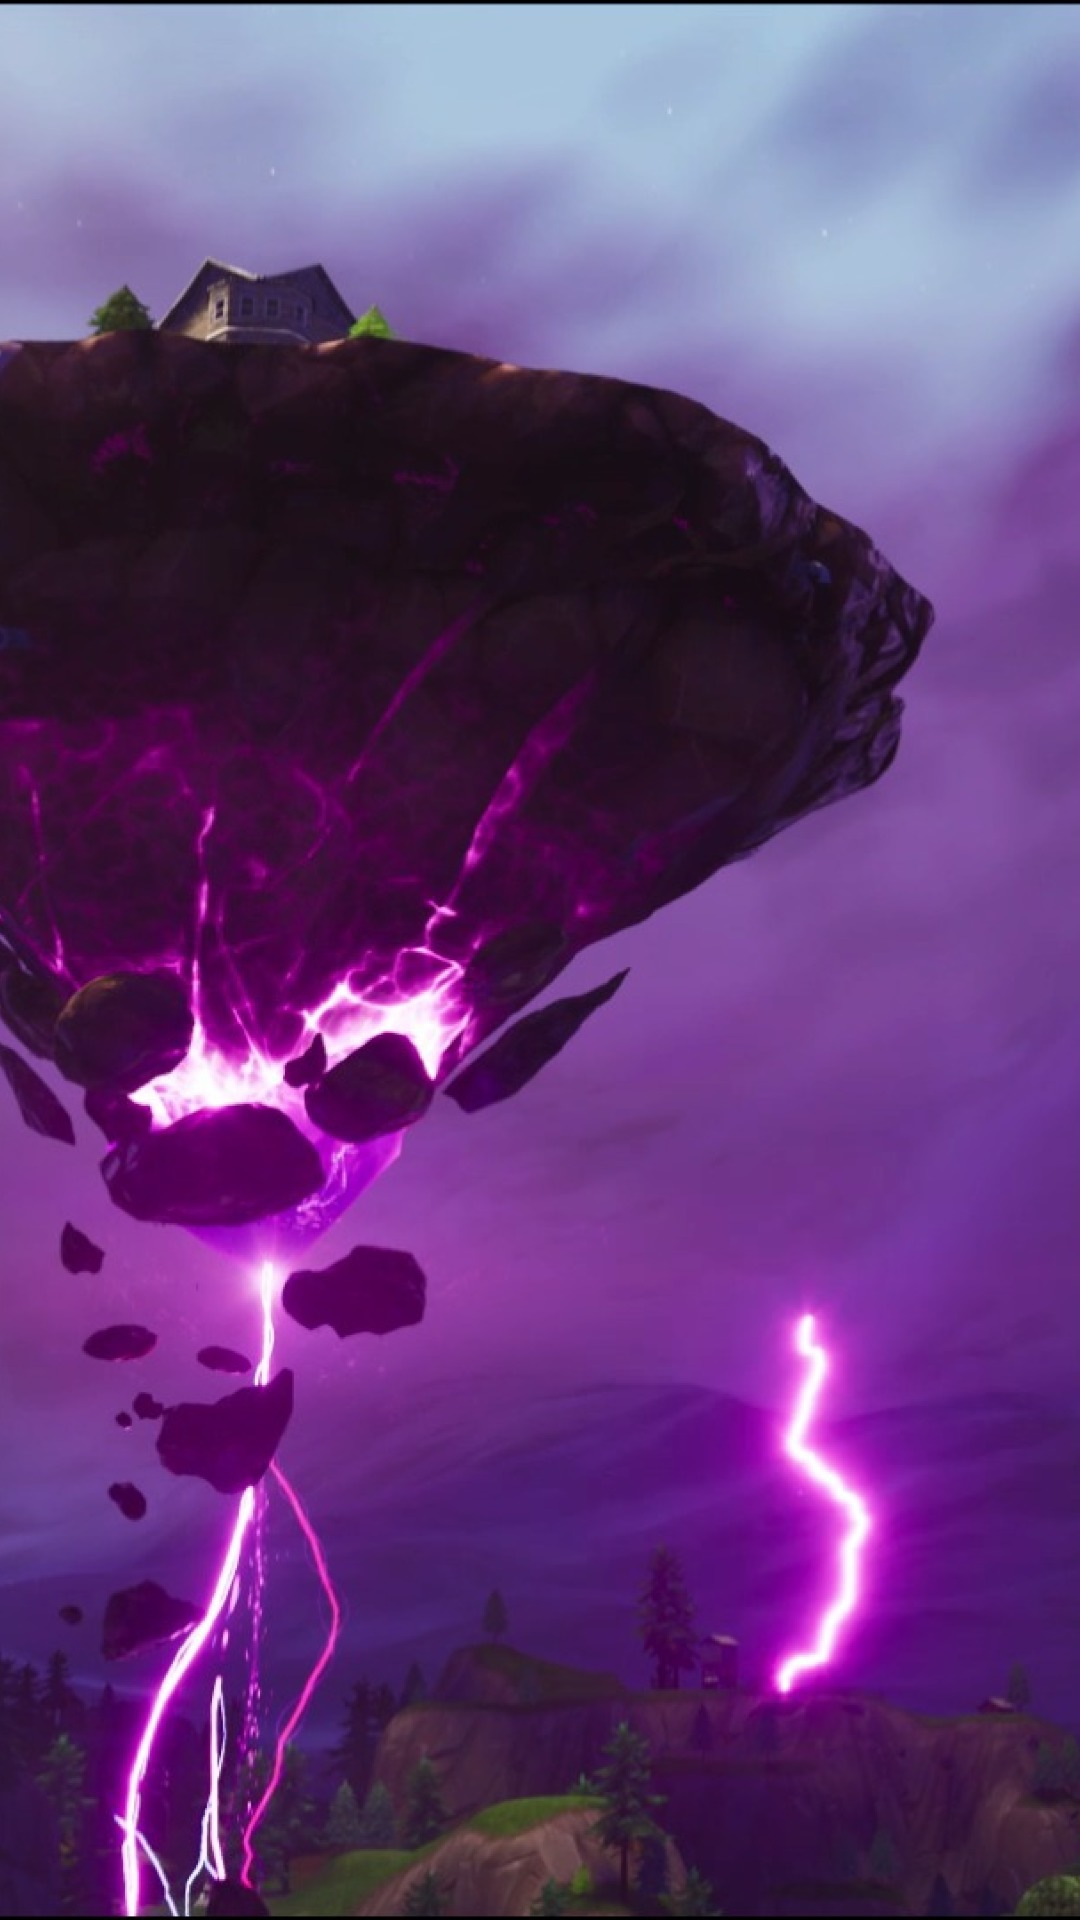 Download Fortnite Xbox One Gameplay 1366x768 Resolution